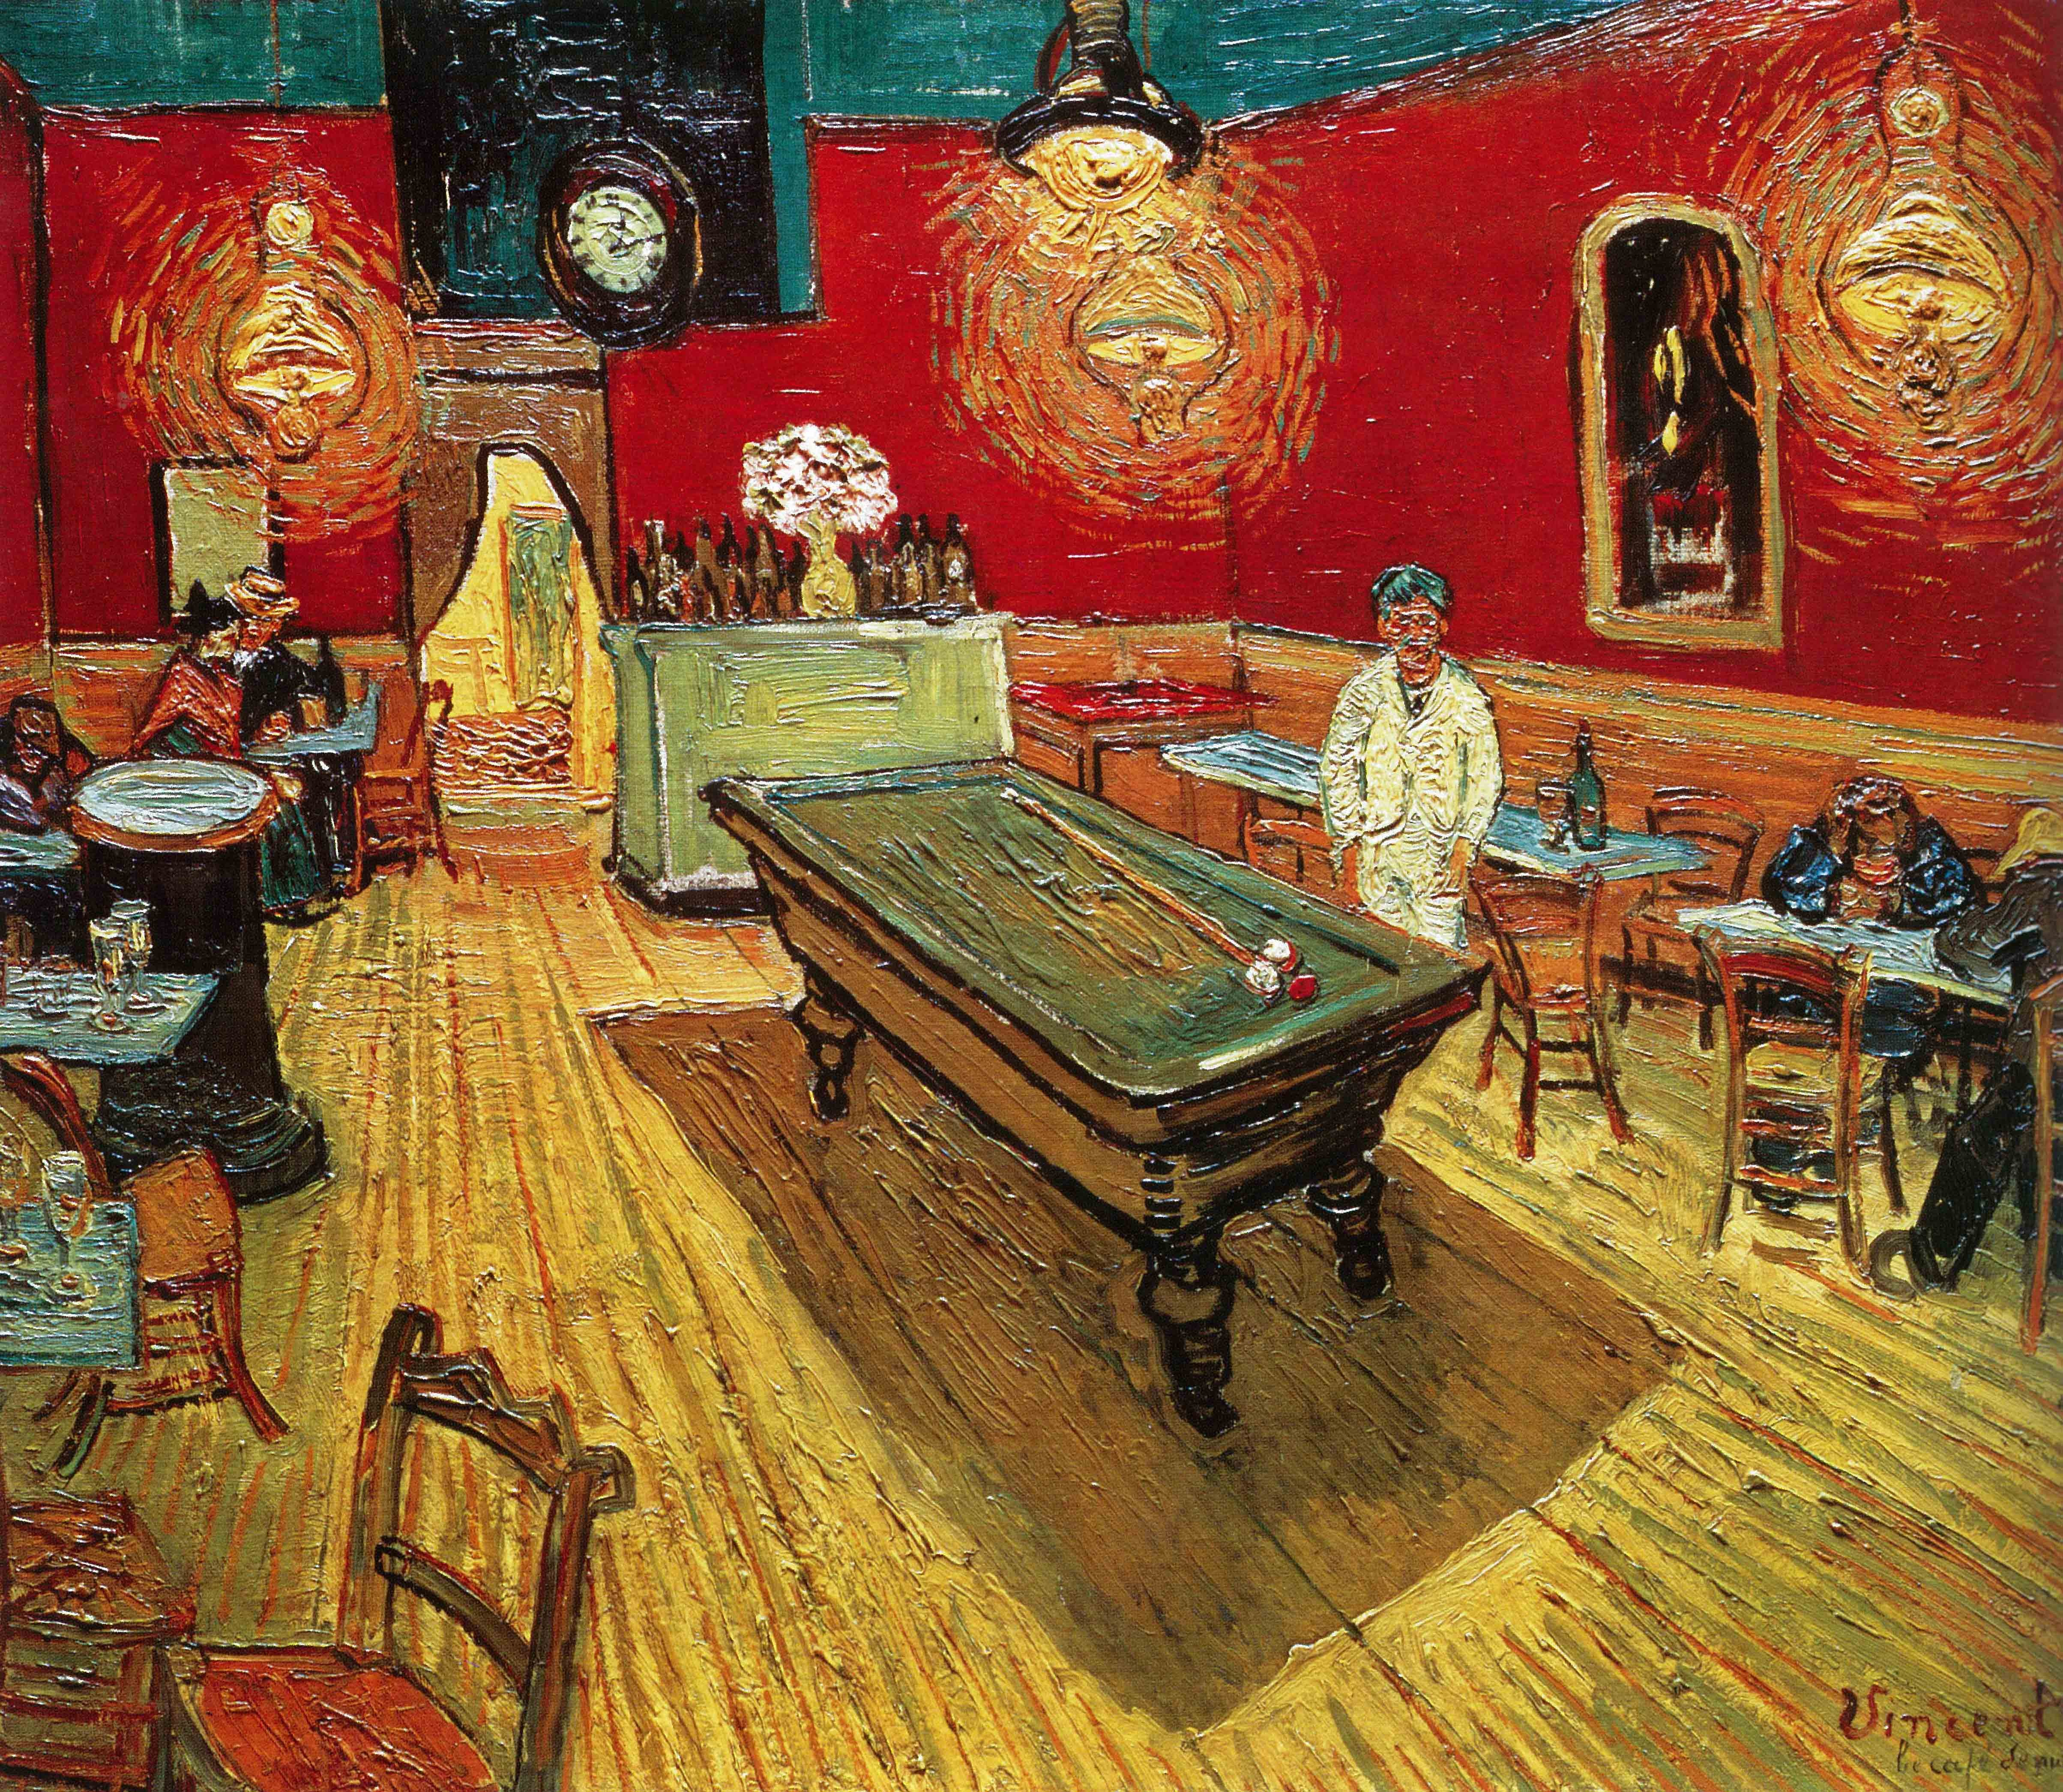 vincent van gogh paintings for sale india interior